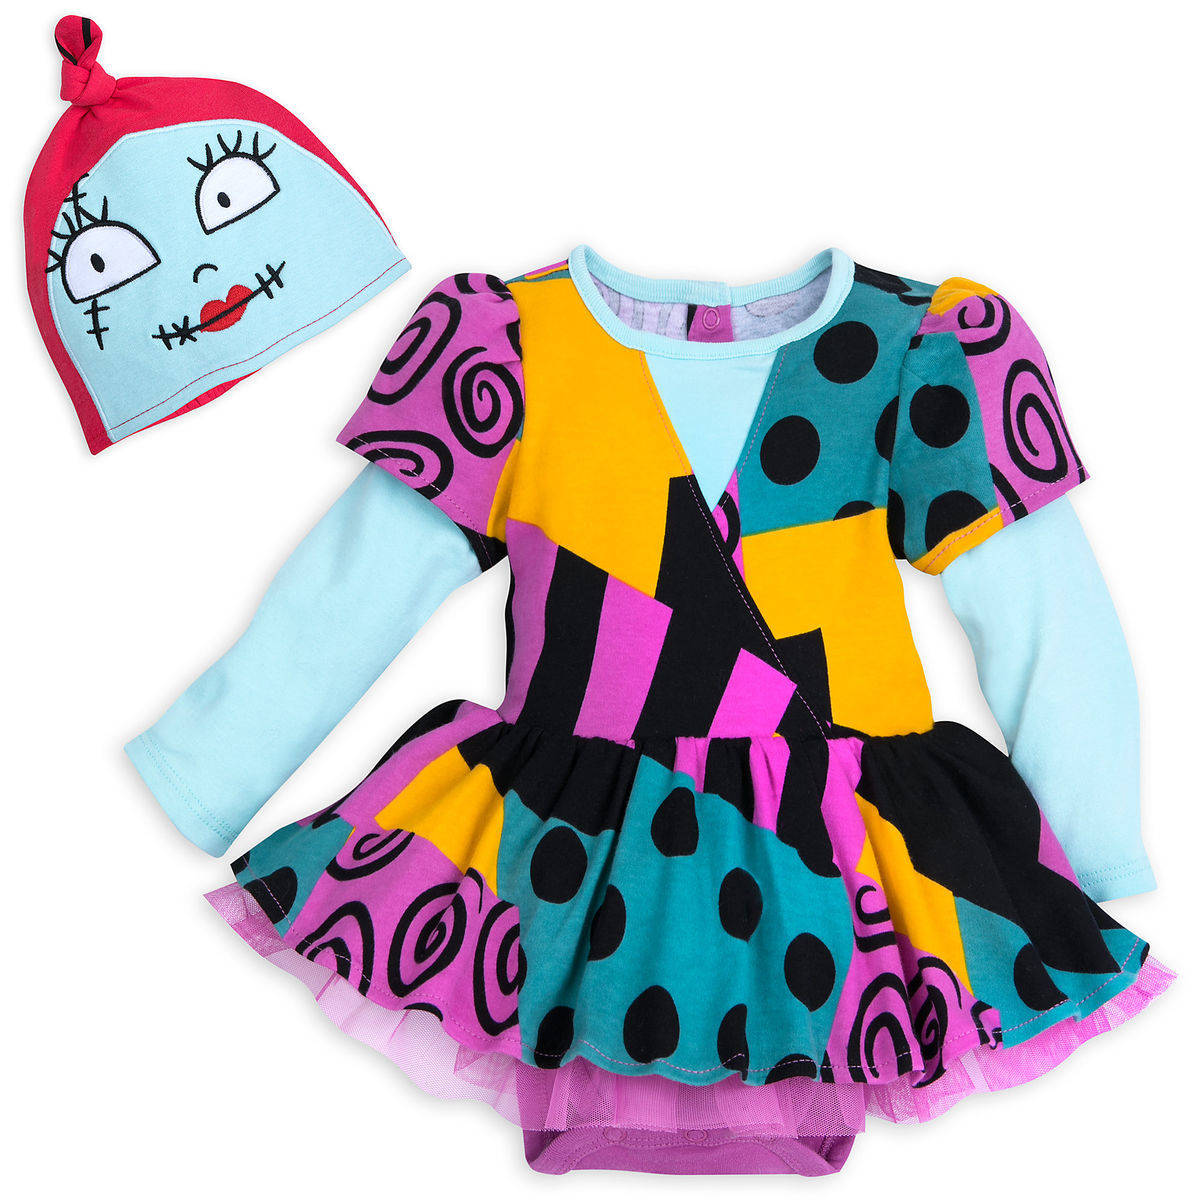 56a0d572a Sally Costume Bodysuit Set for Baby - The Nightmare Before Christmas ...